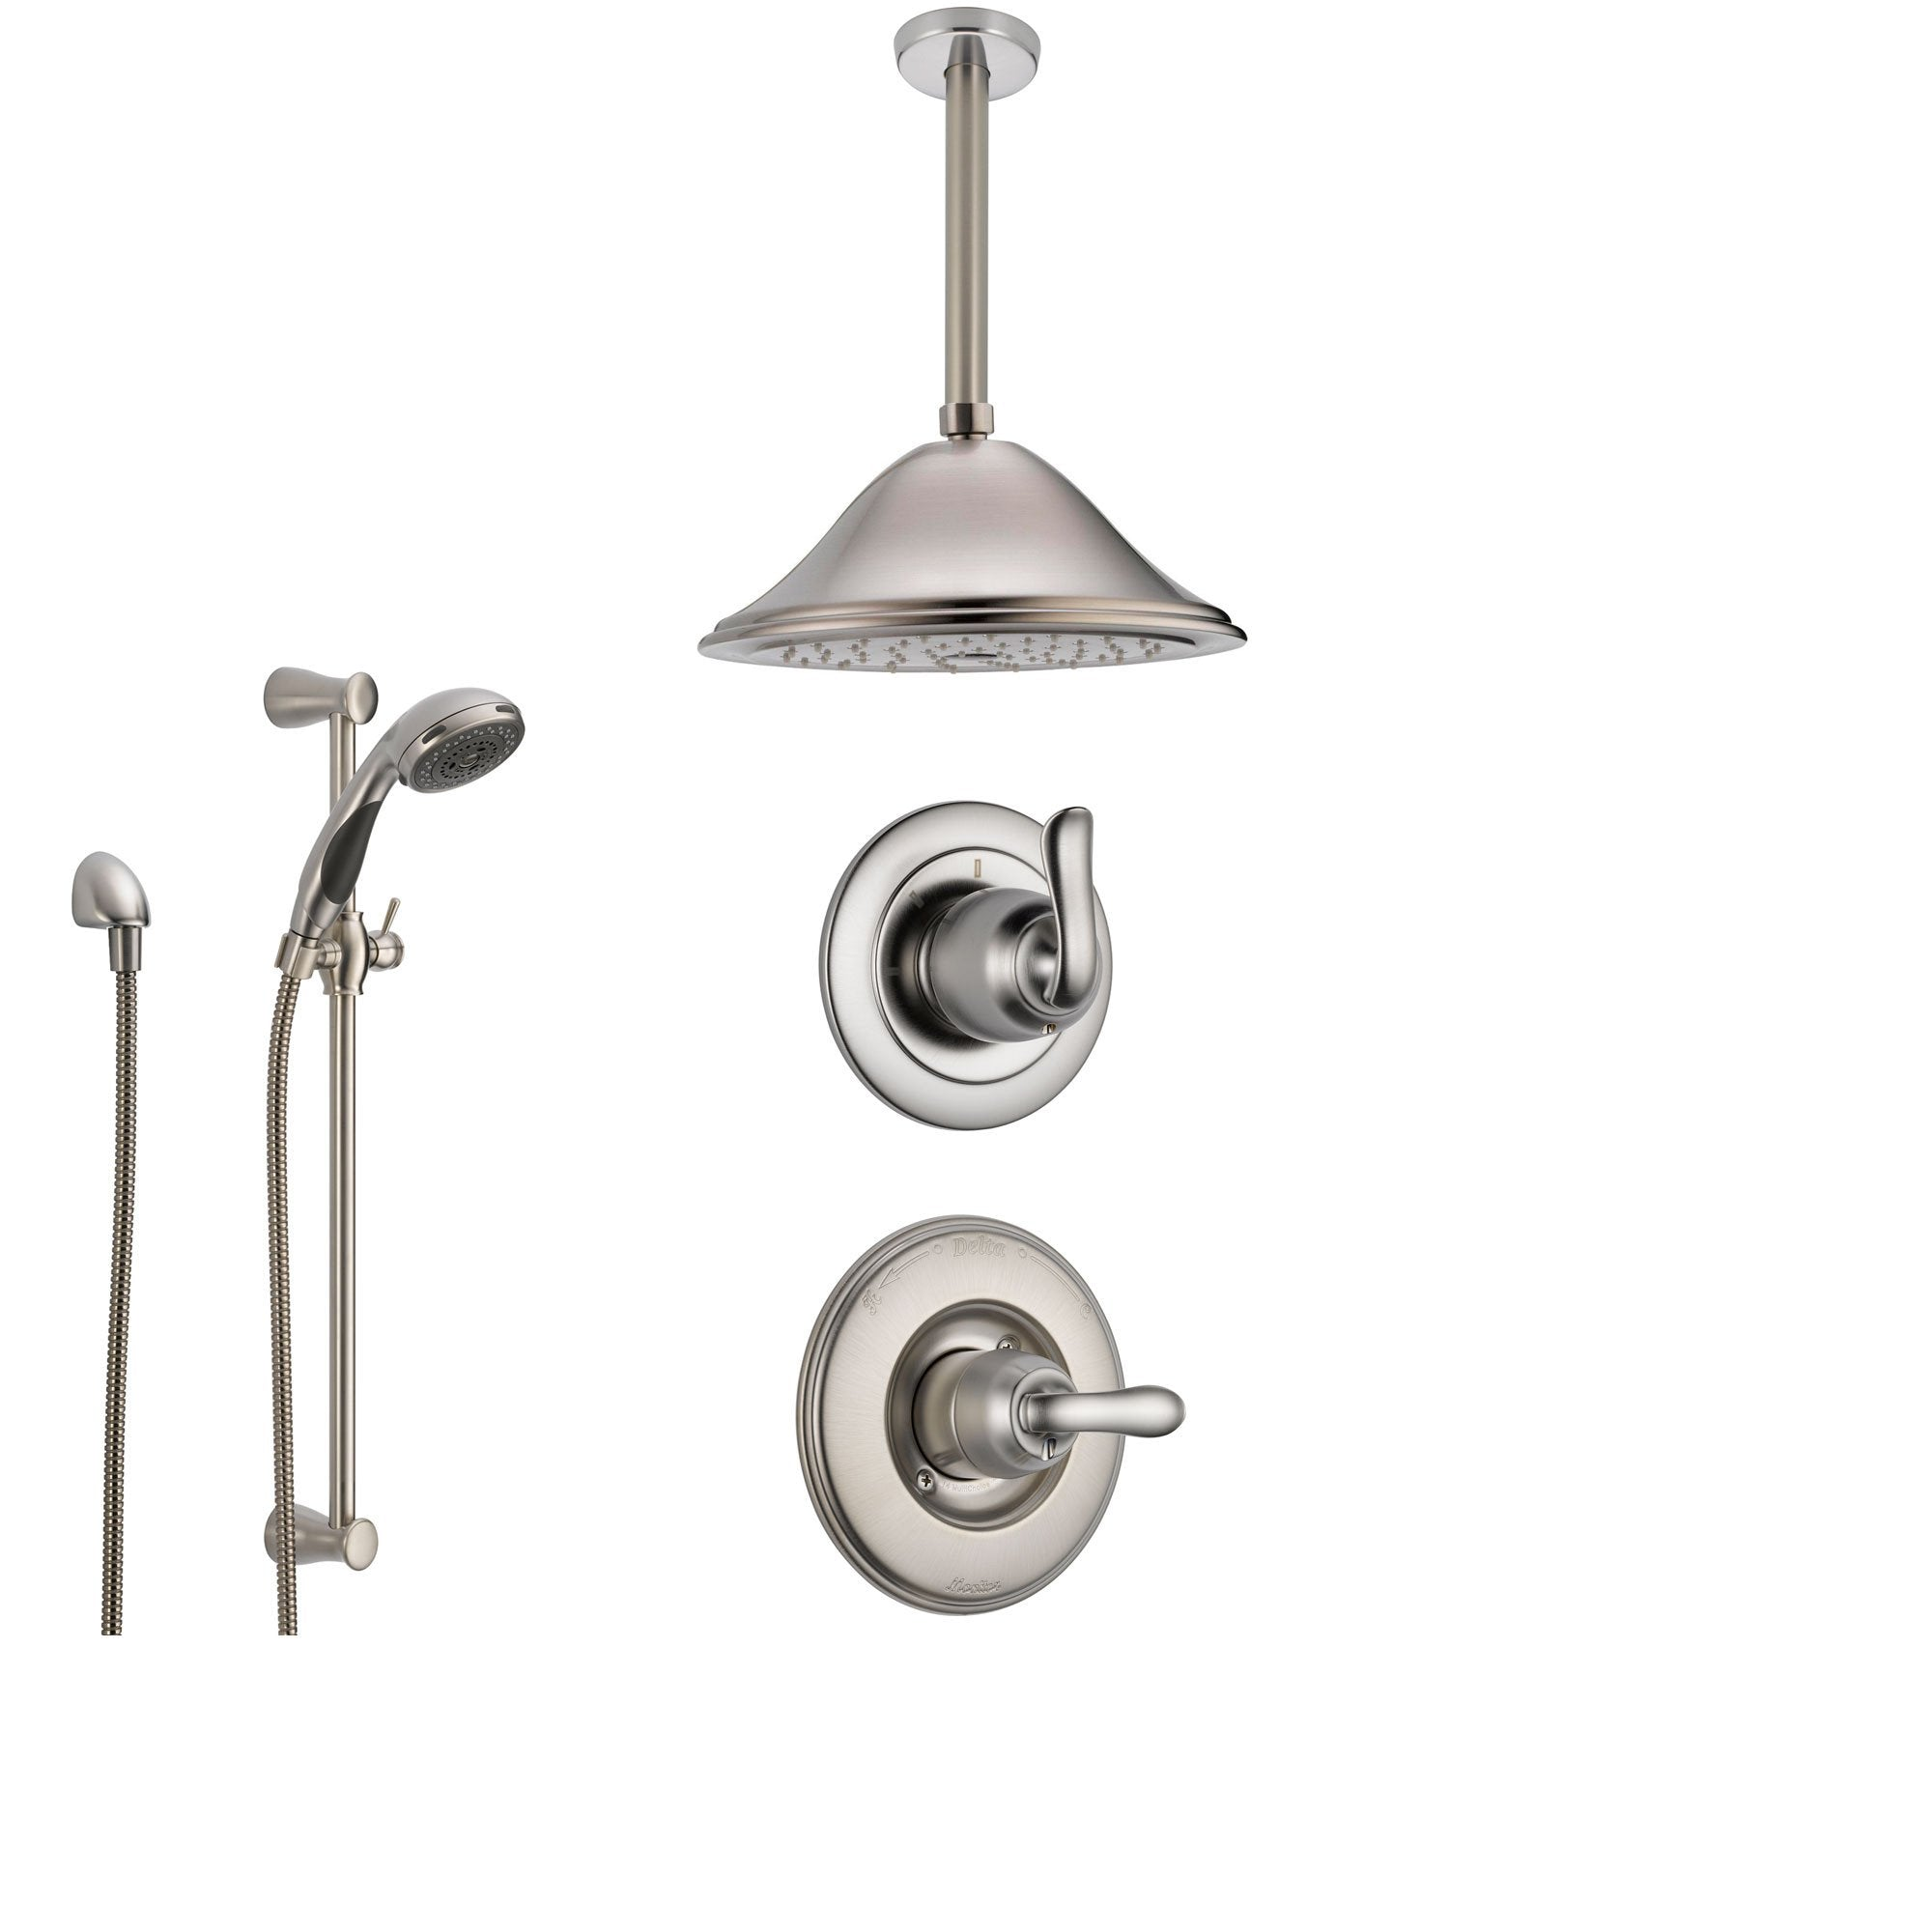 Delta Linden Stainless Steel Shower System With Normal Shower Handle 3 Setting Diverter Large Ceiling Mount Rain Shower Head And Handheld Shower